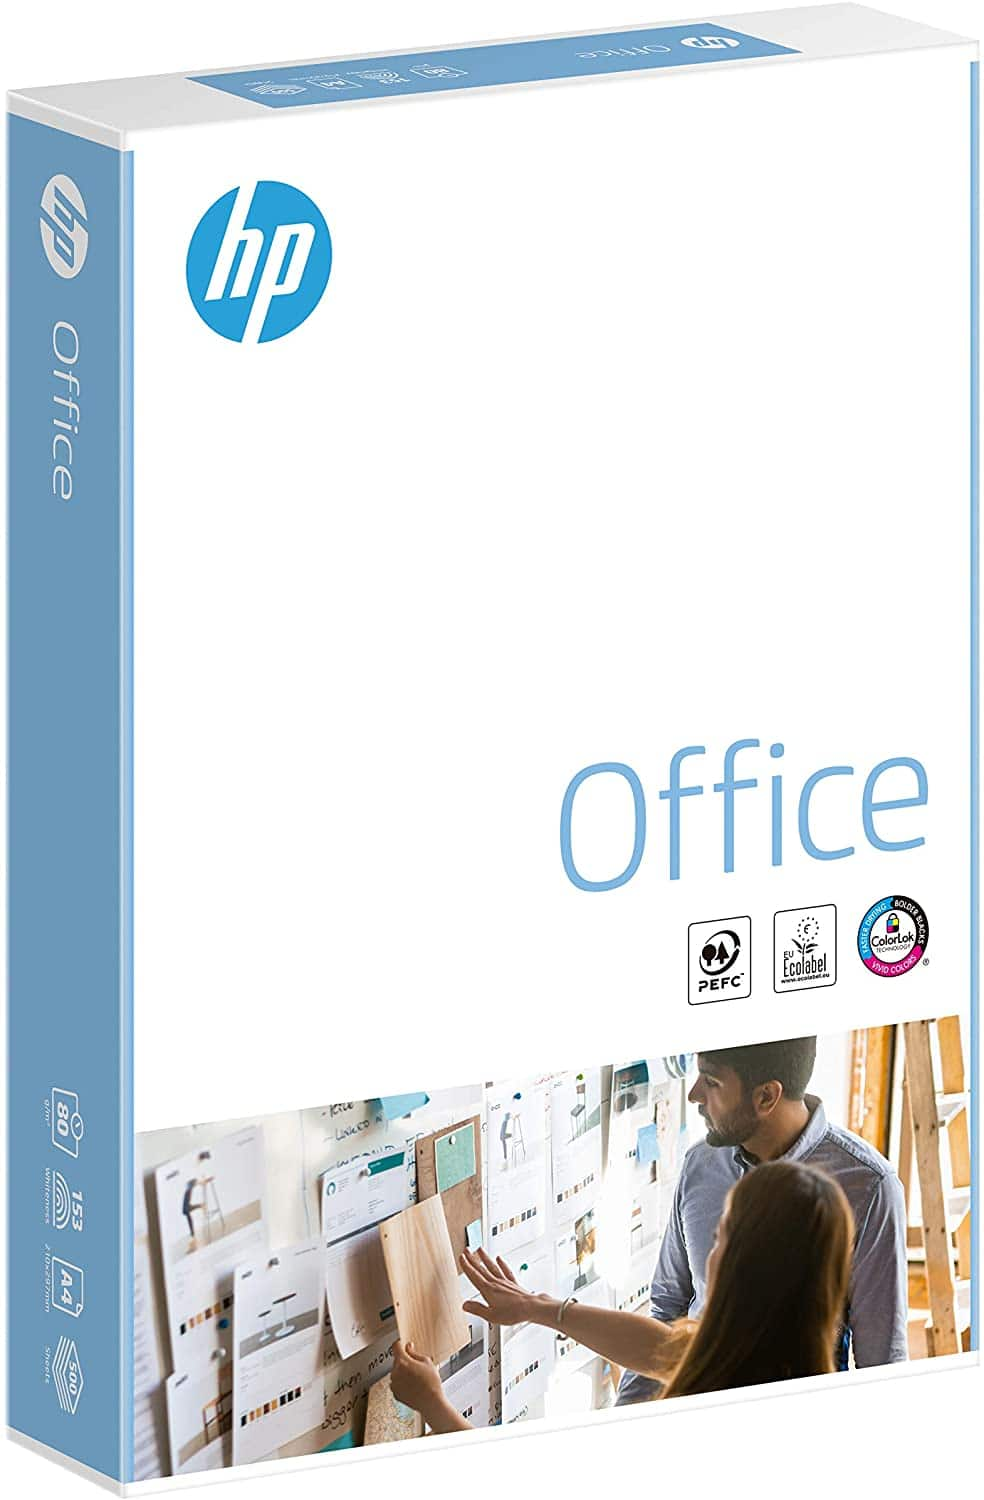 Cheap HP Office 500sheets Single Ream